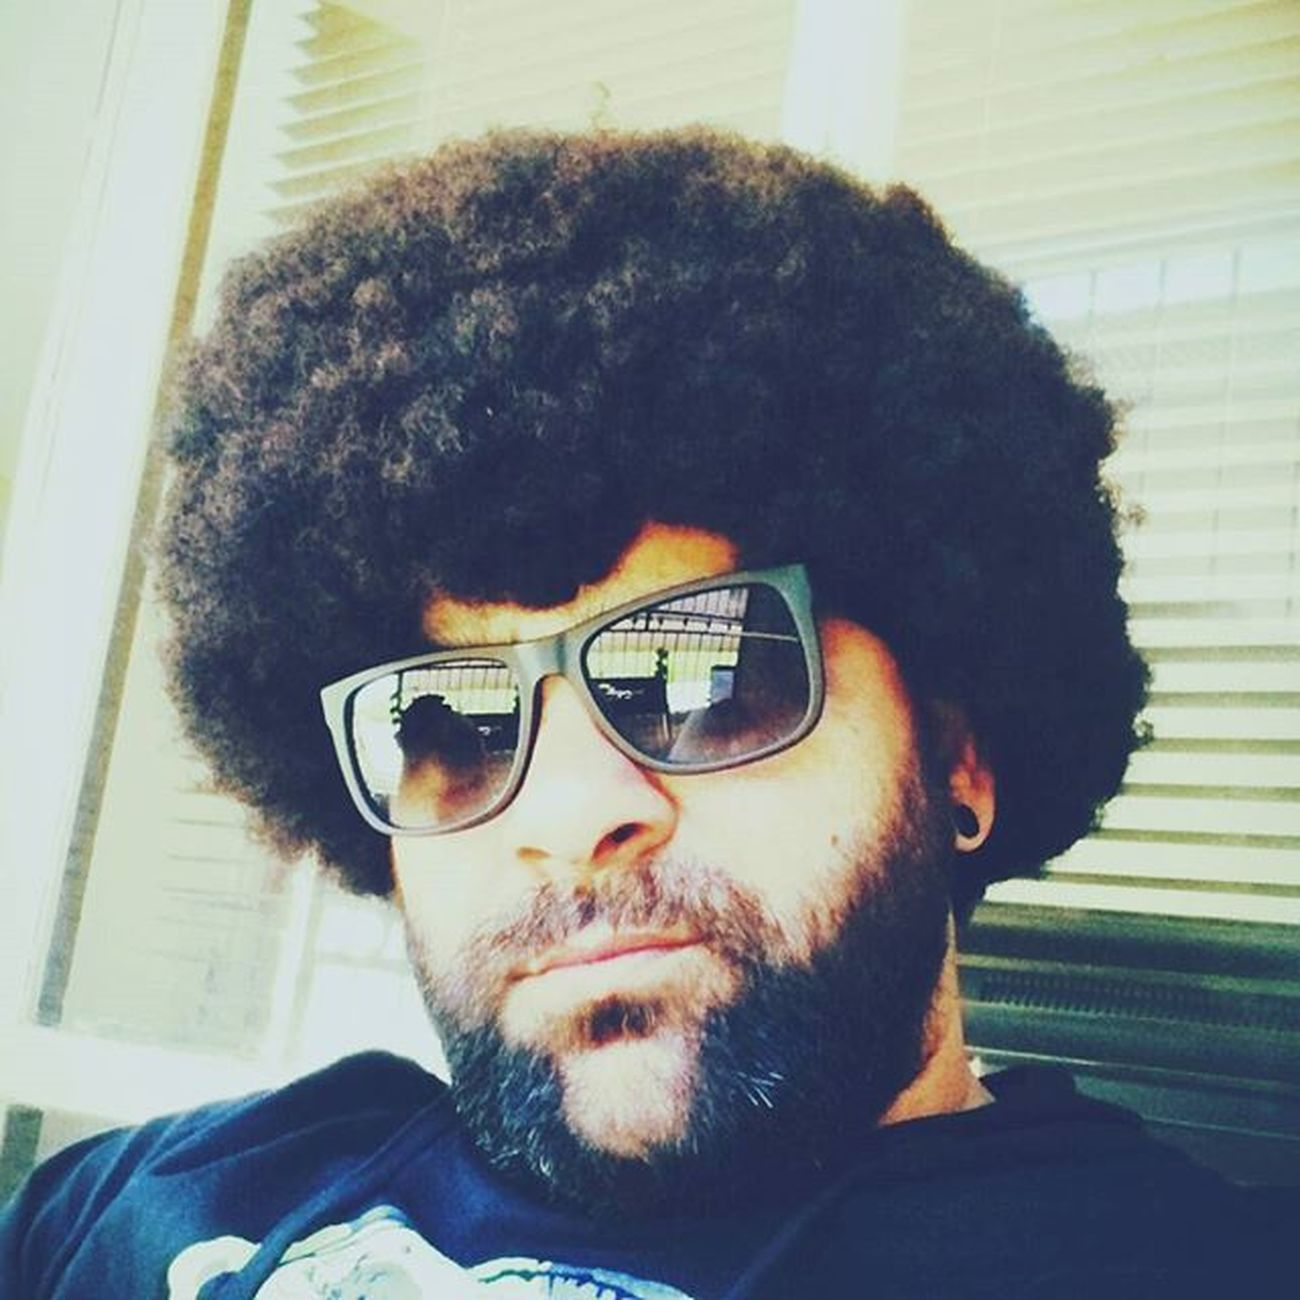 Retro Afro Afrohair AFROJACK Afrohair Afropunk Beardedthug Beardedthug Beardlove Beardlife Beardlifestyle Pogonophilenation Beardedbrotherhood OneLove to all Beardedbrothers & Non -bearded sisters Worldwide